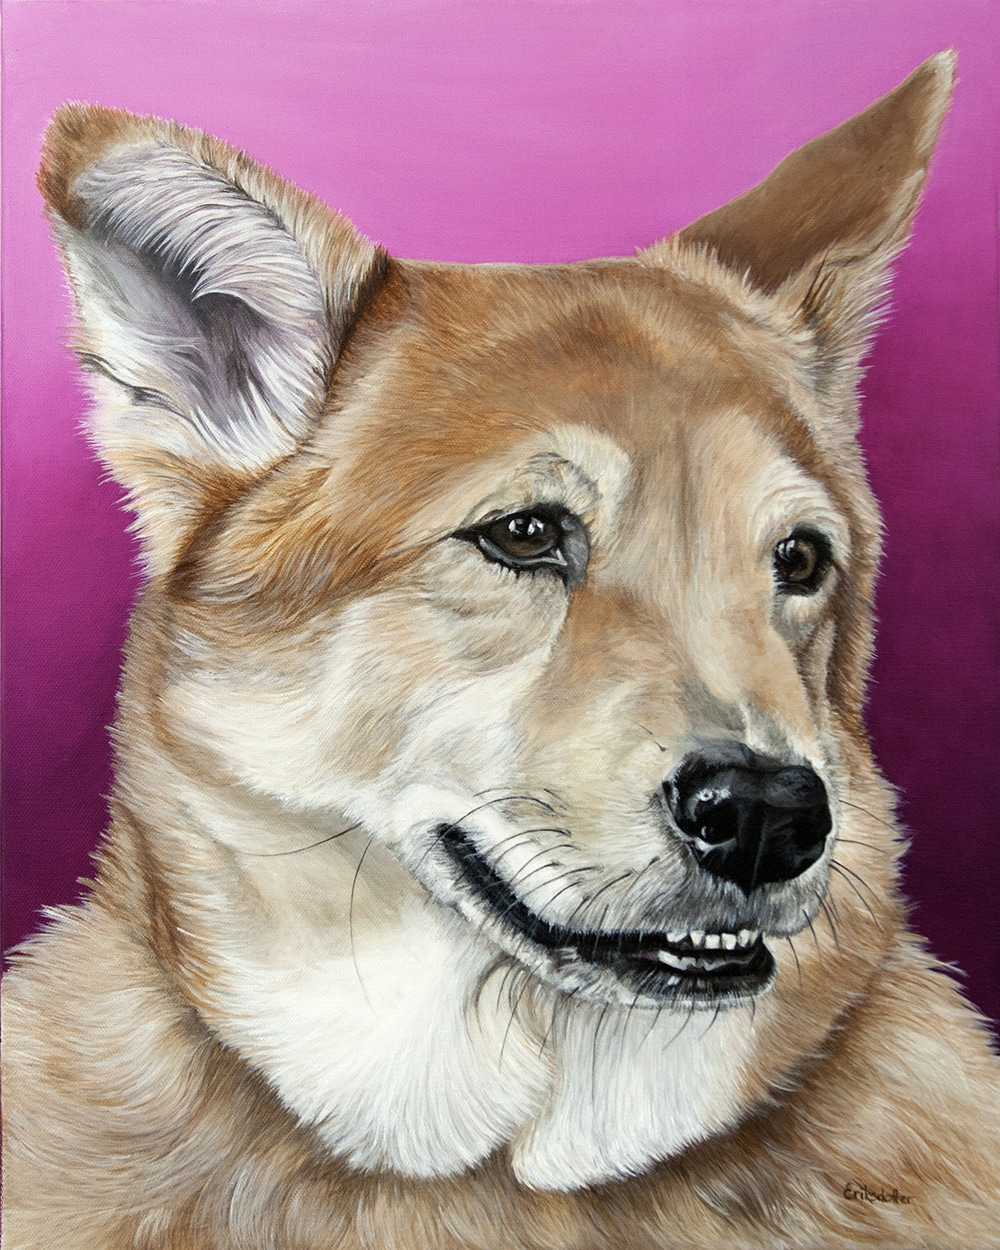 Custom dog portrait of a german sheperd and chow mix dog by fine arts painter Erica Eriksdotter